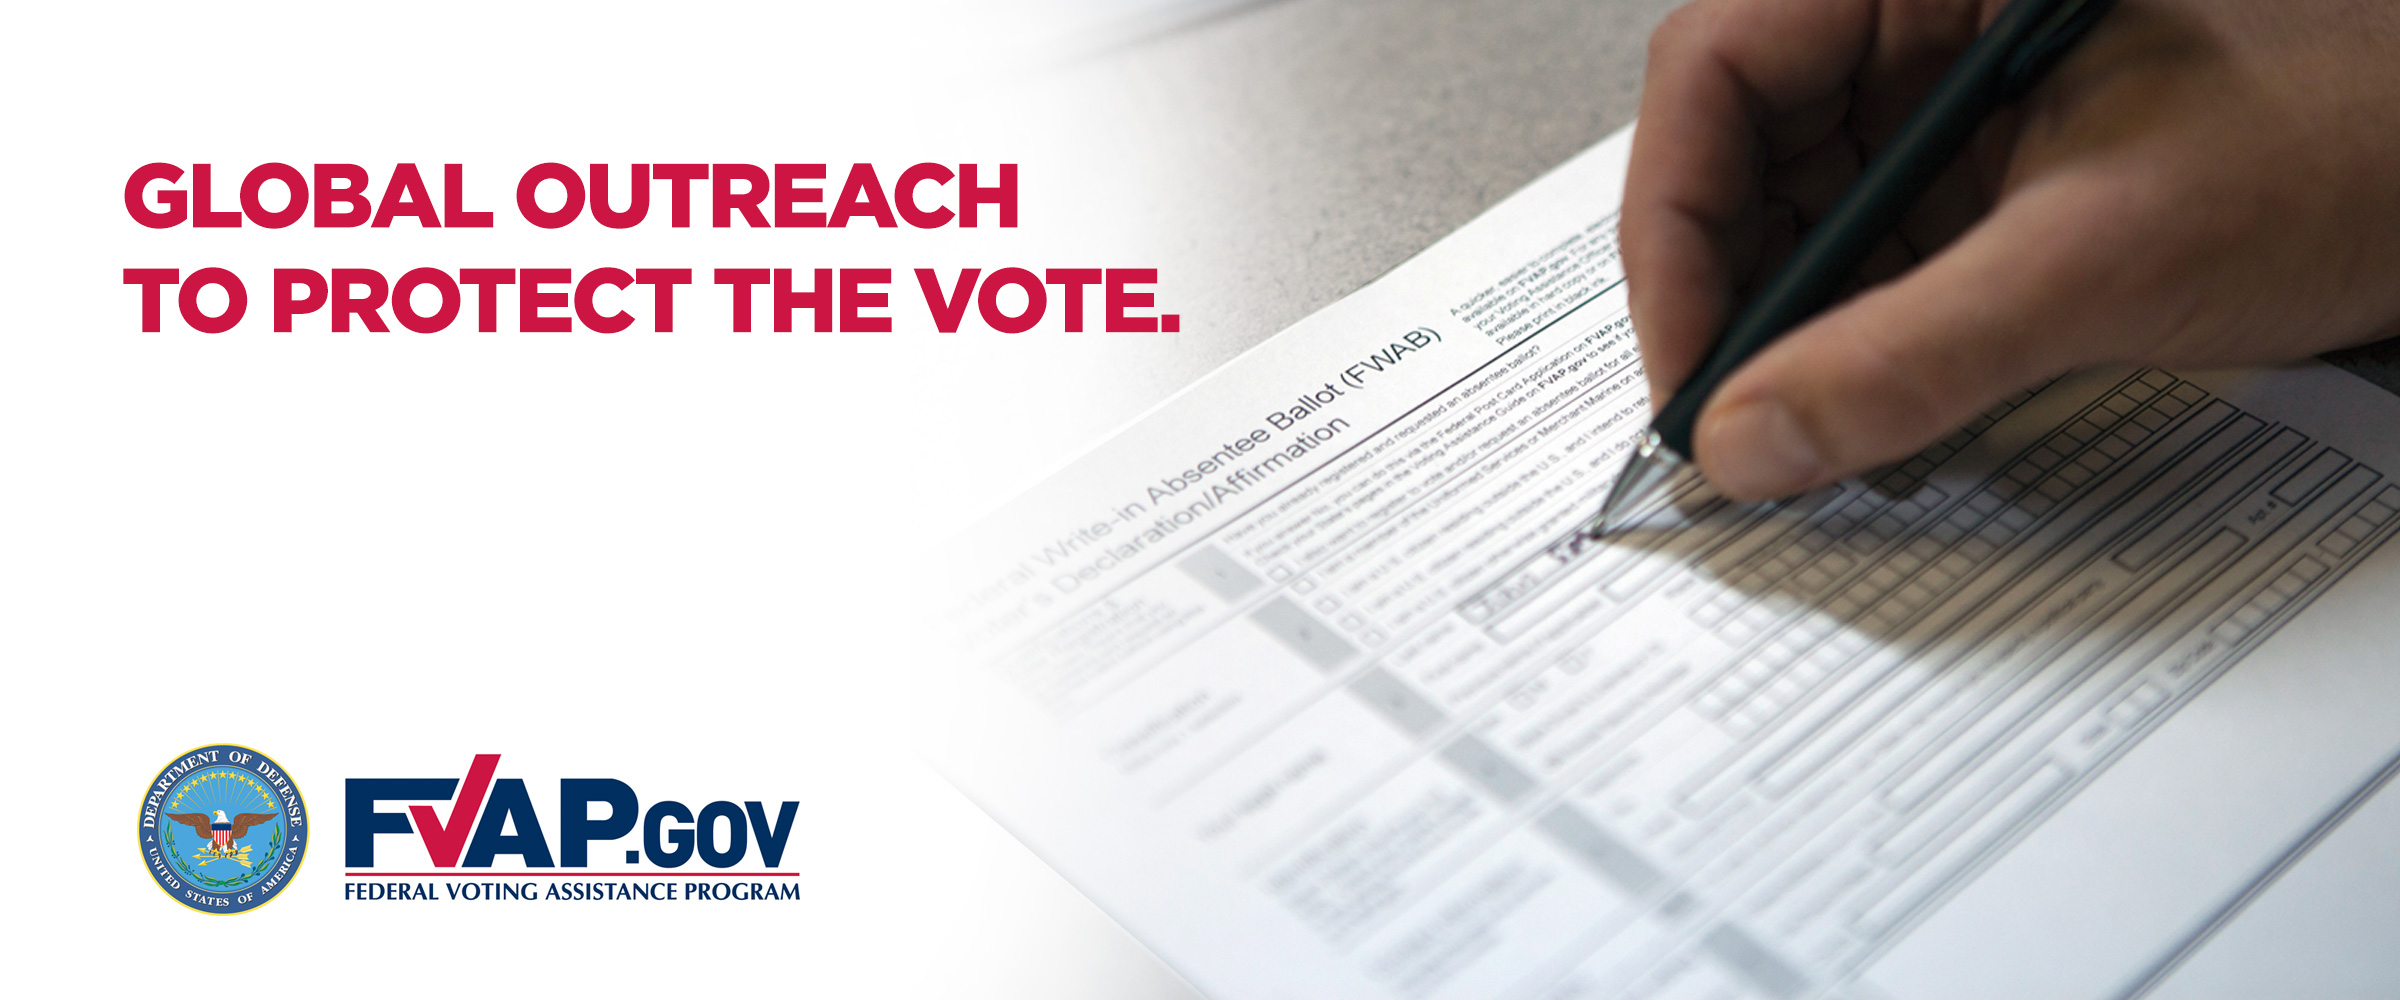 FVAP - Federal Voting Assistance Program